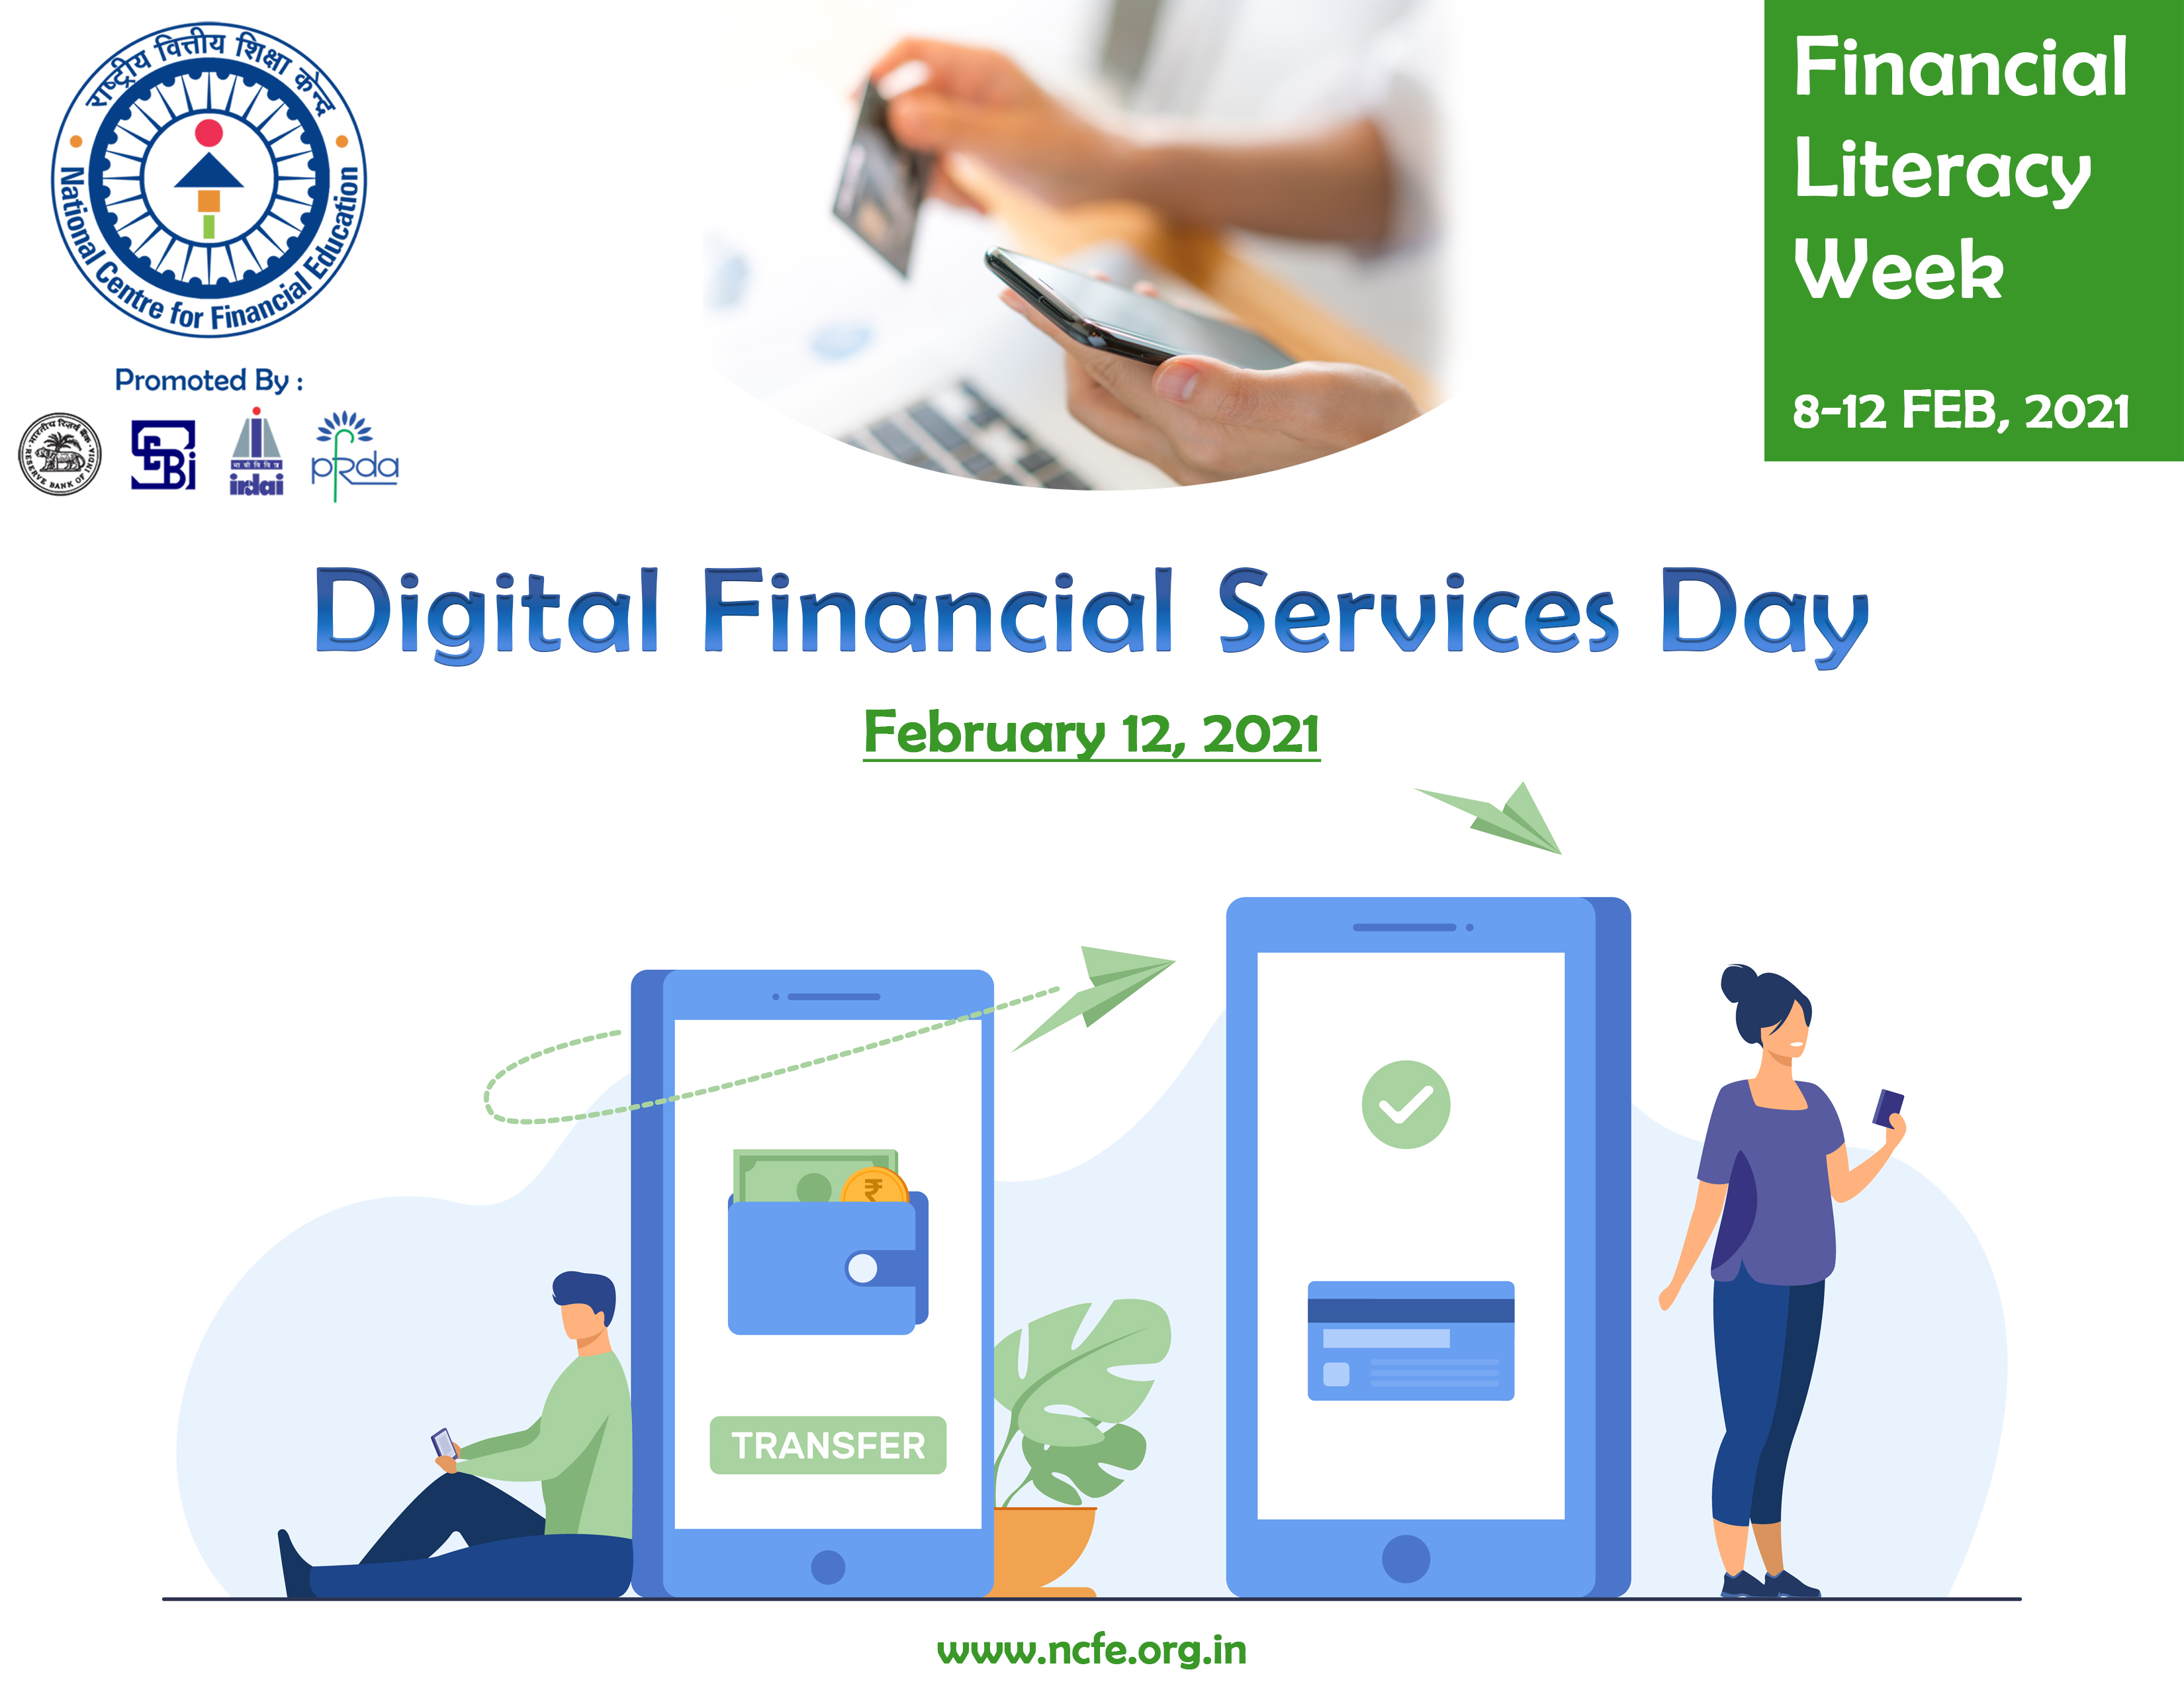 Digital Financial Services Day